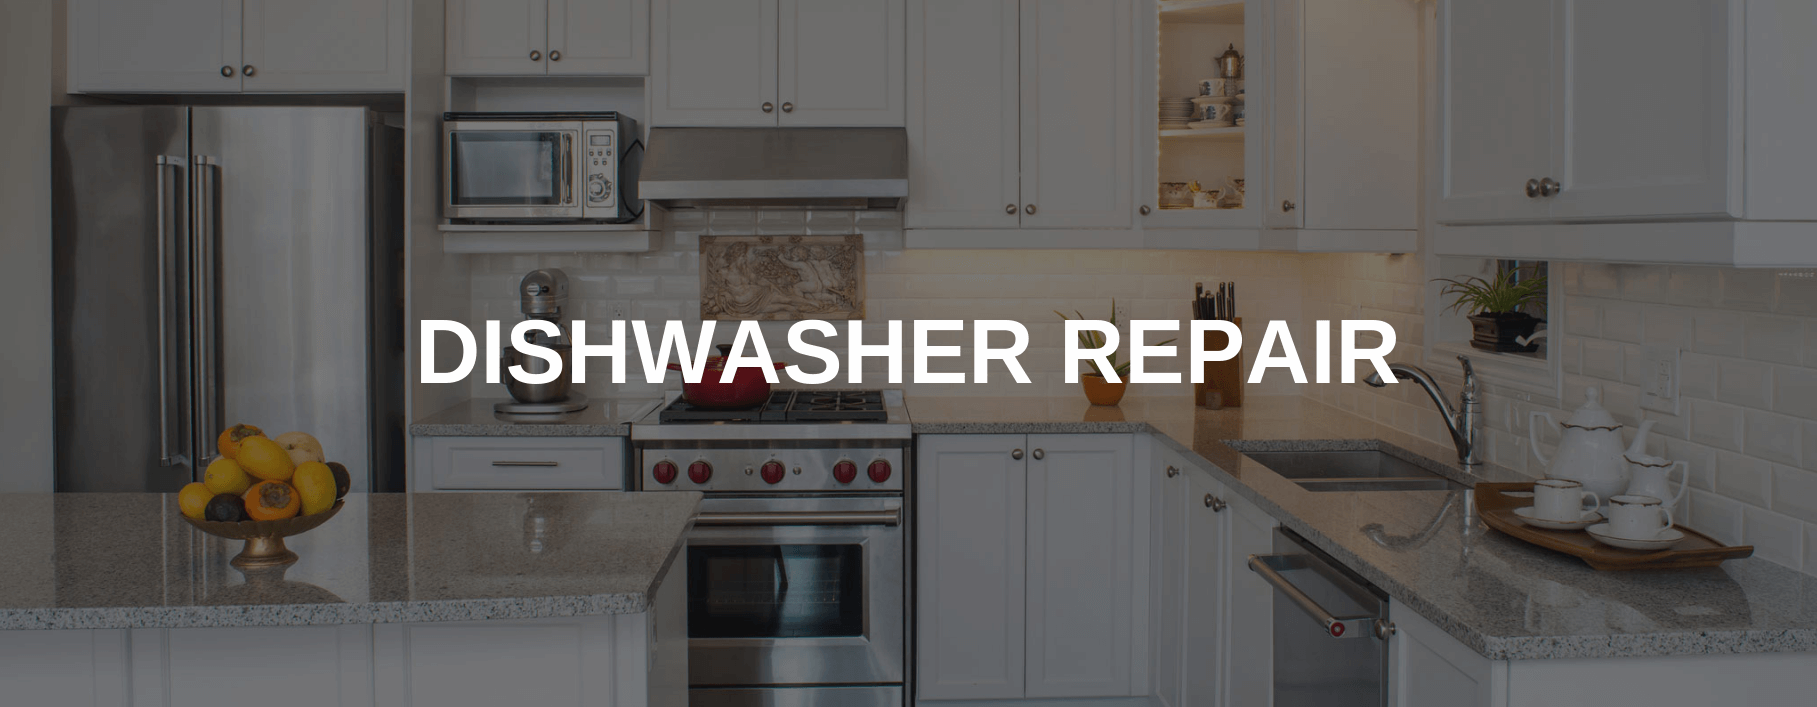 dishwasher repair chicago